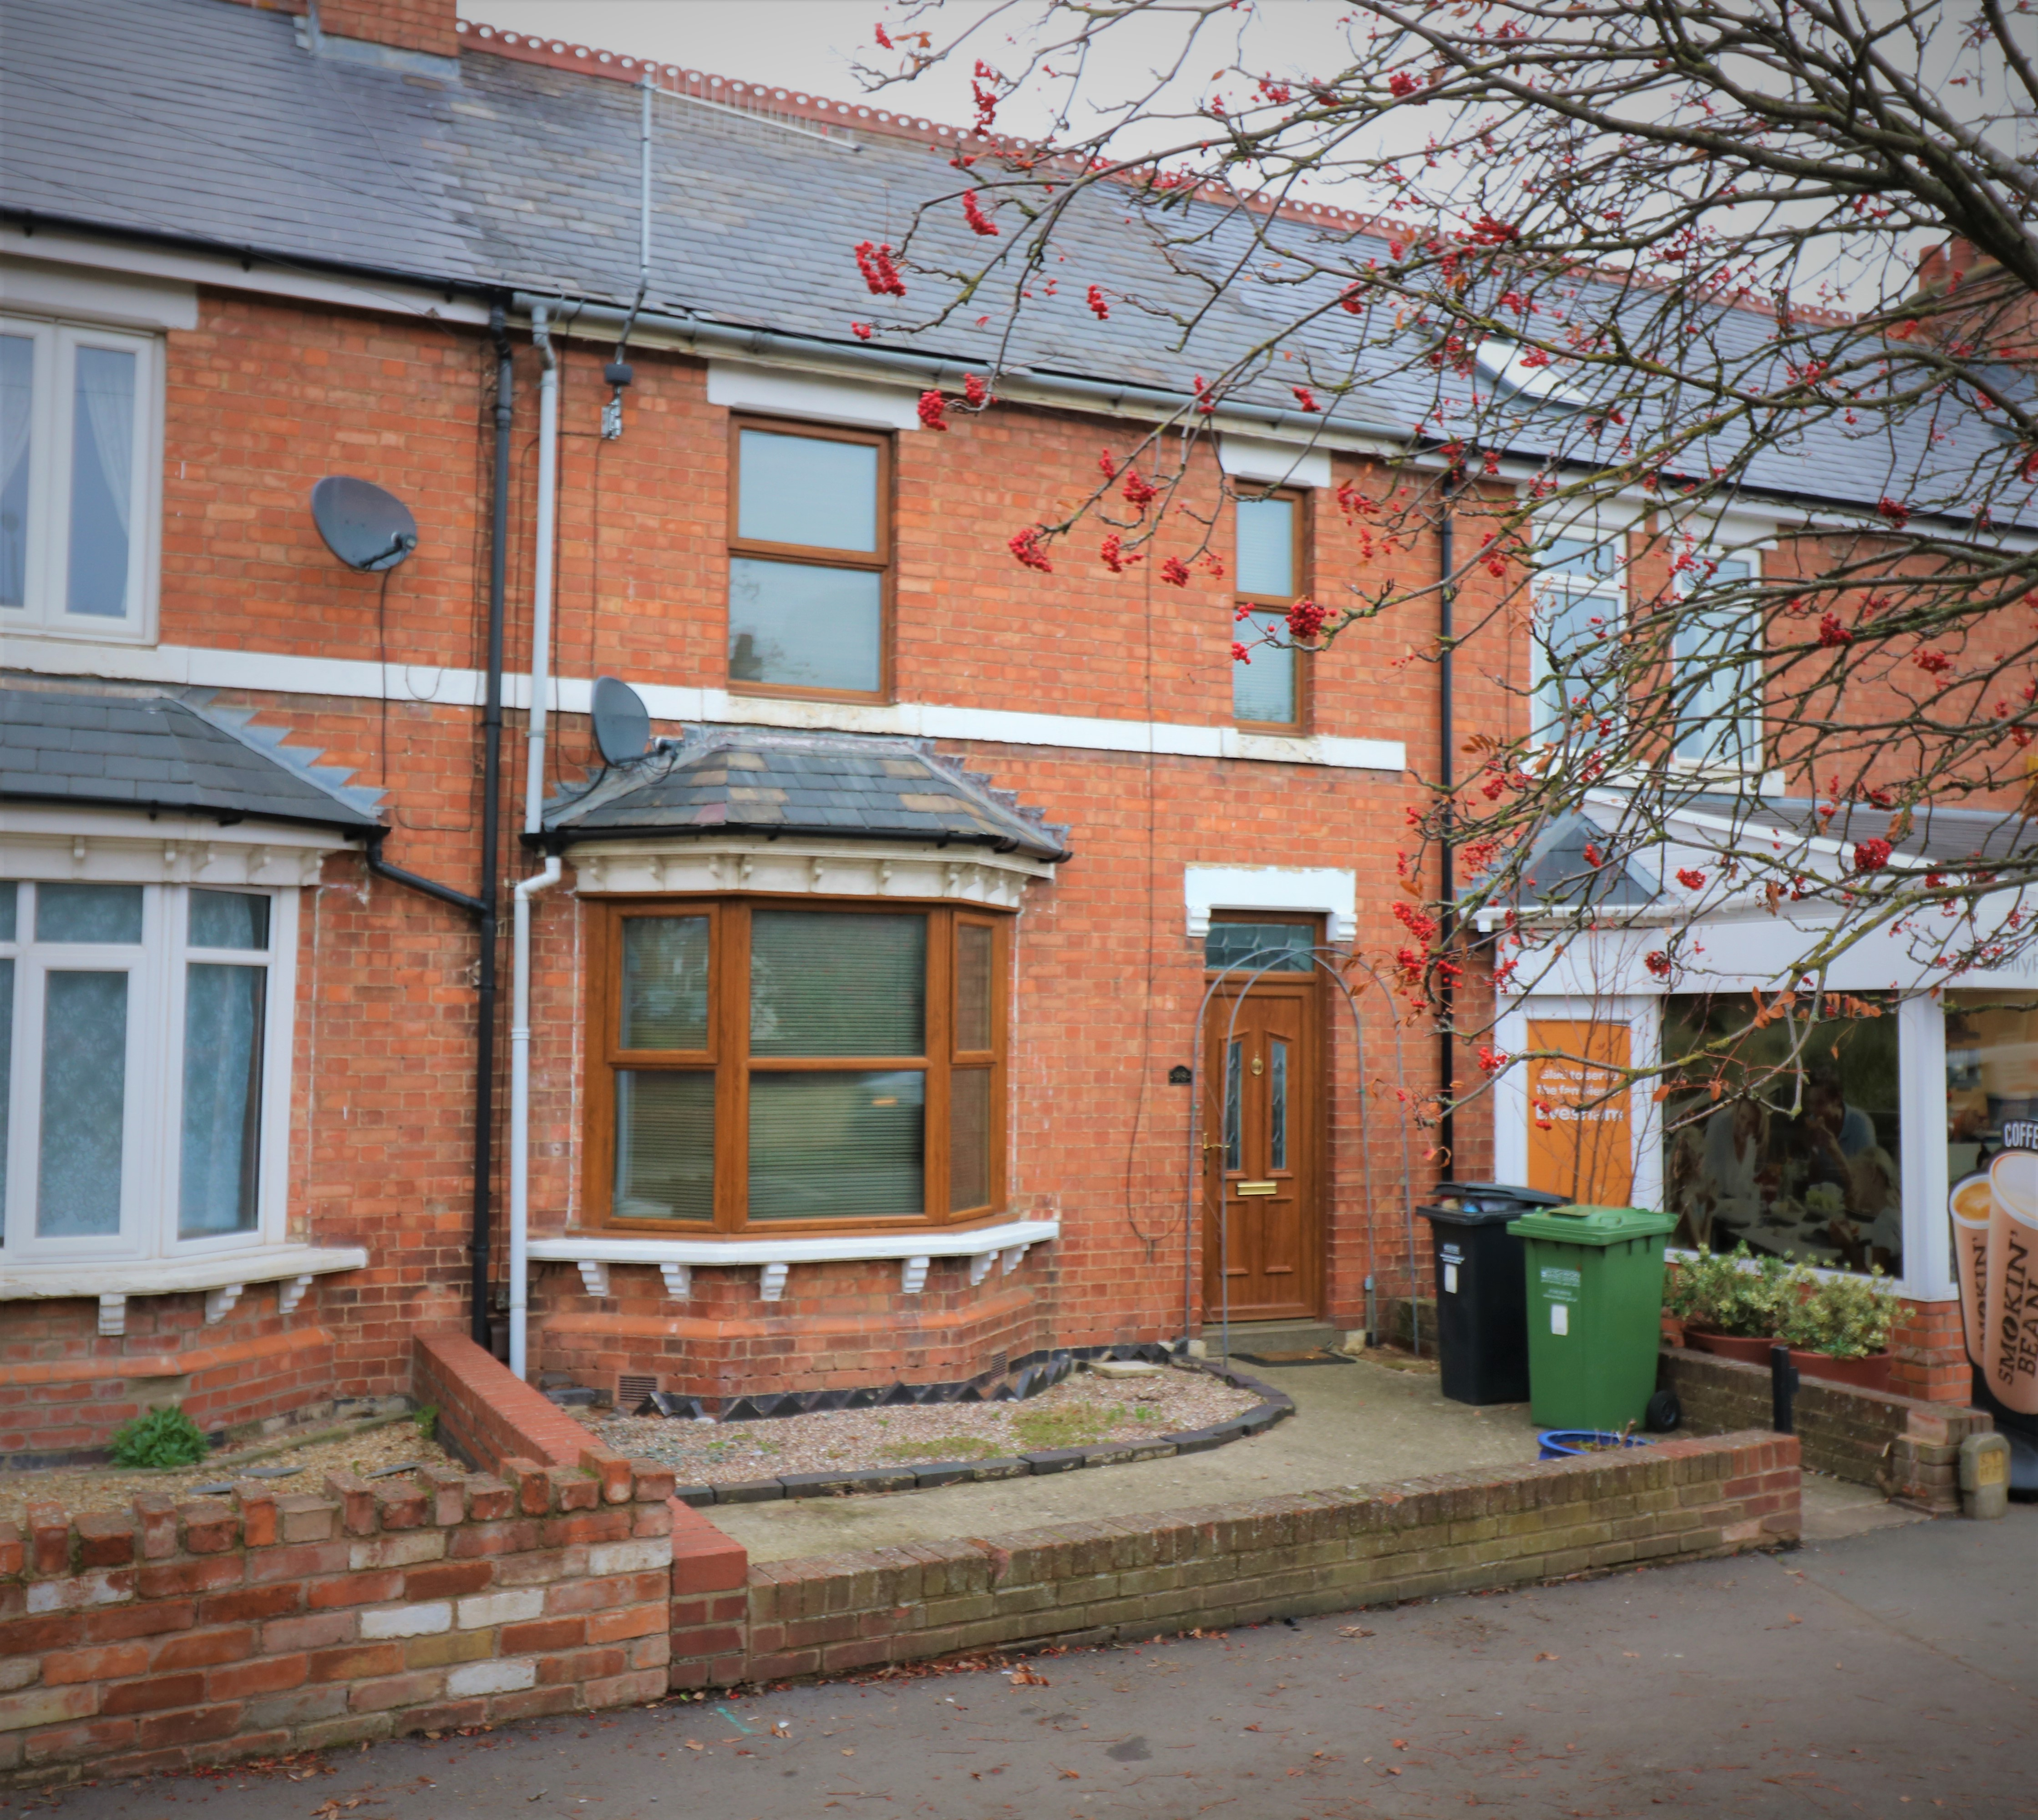 98 Pershore Road - Click for more details